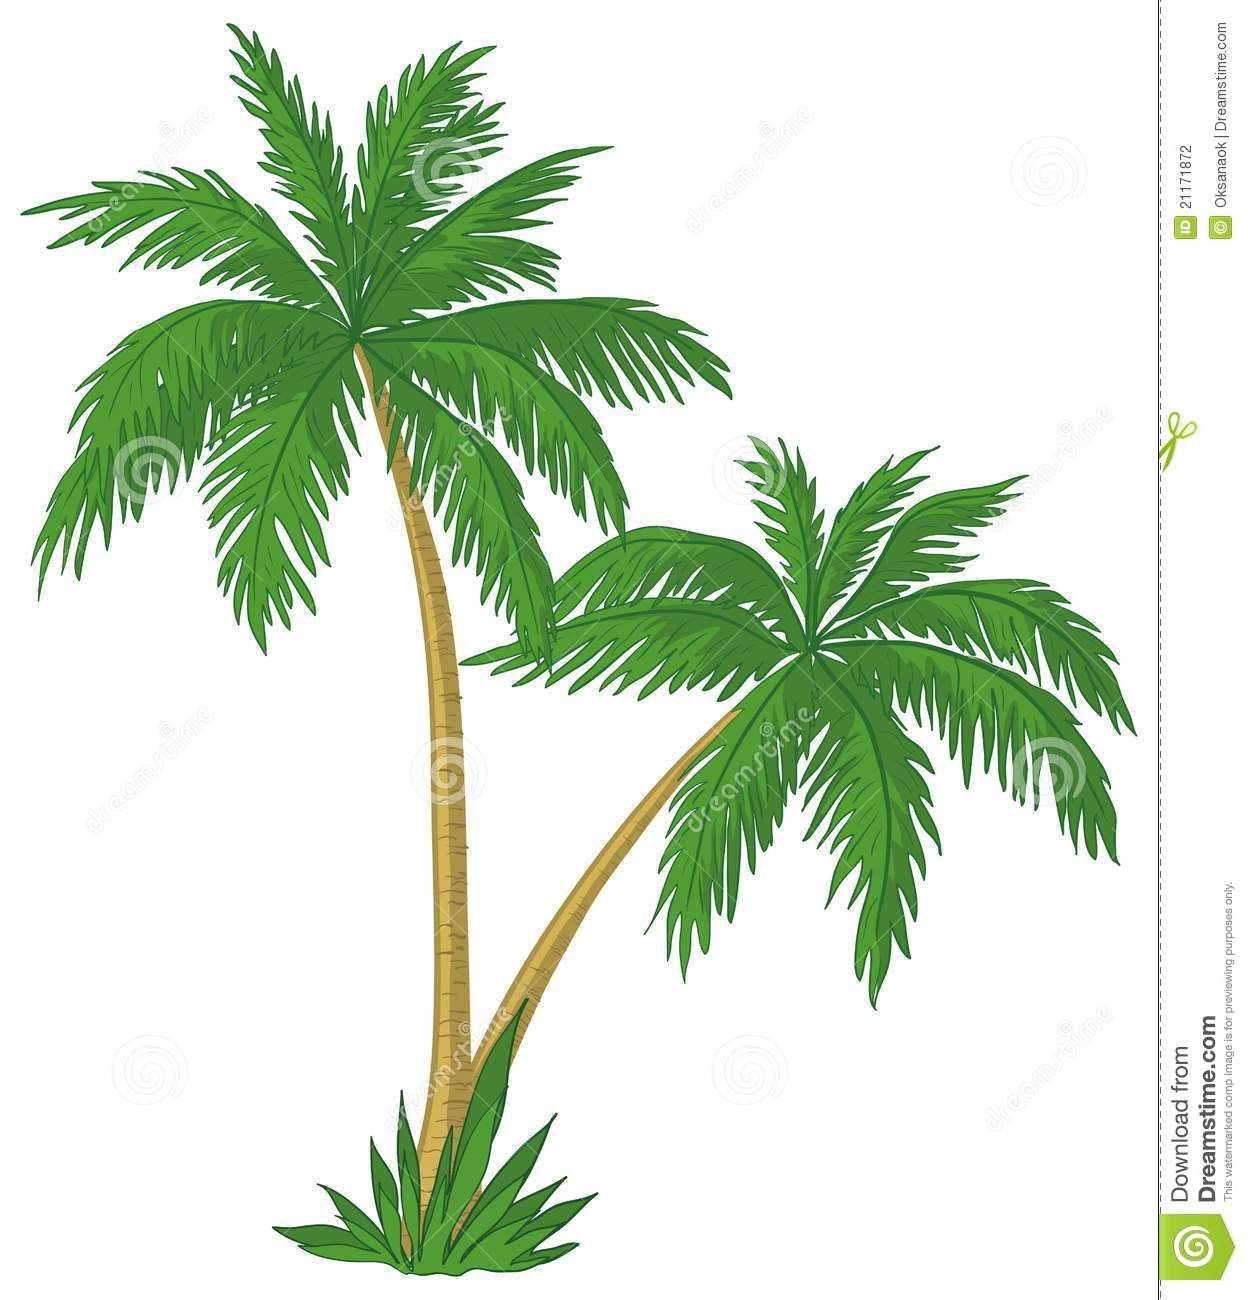 Palm tree root clipart #11